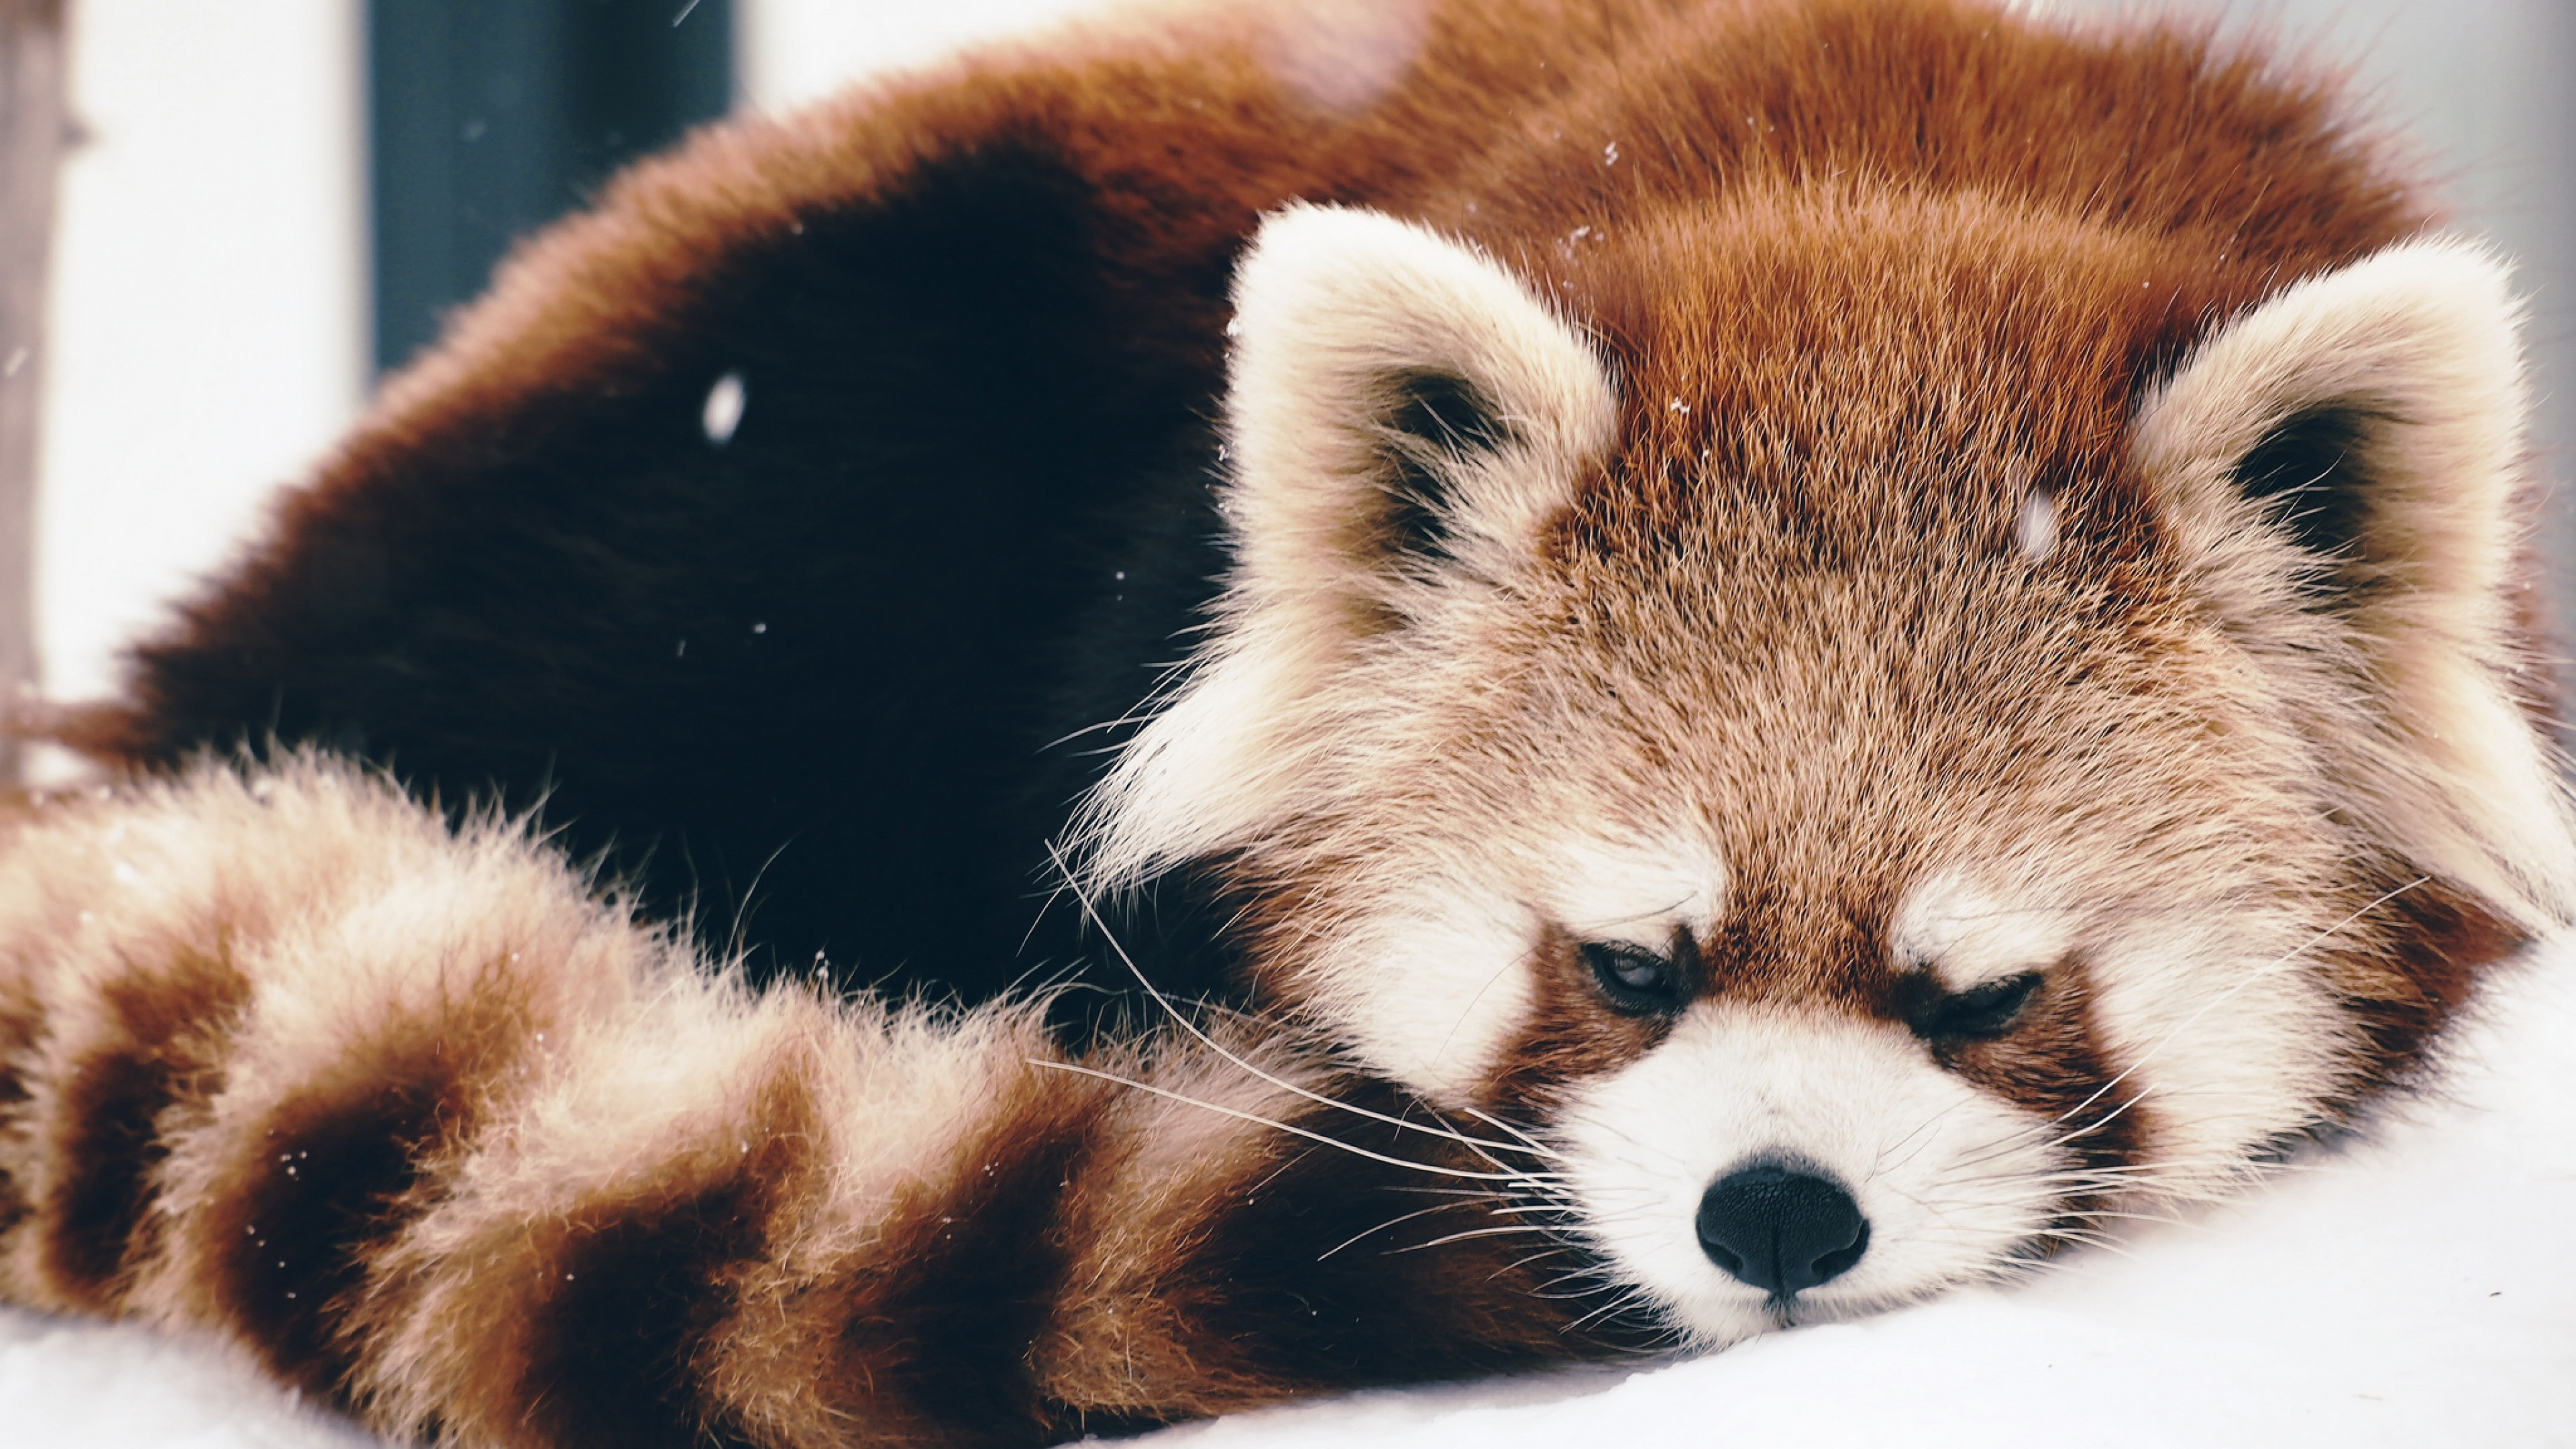 3840x2160 Baby Red Panda Wallpapers Free with High Definition Wallpaper Cute .